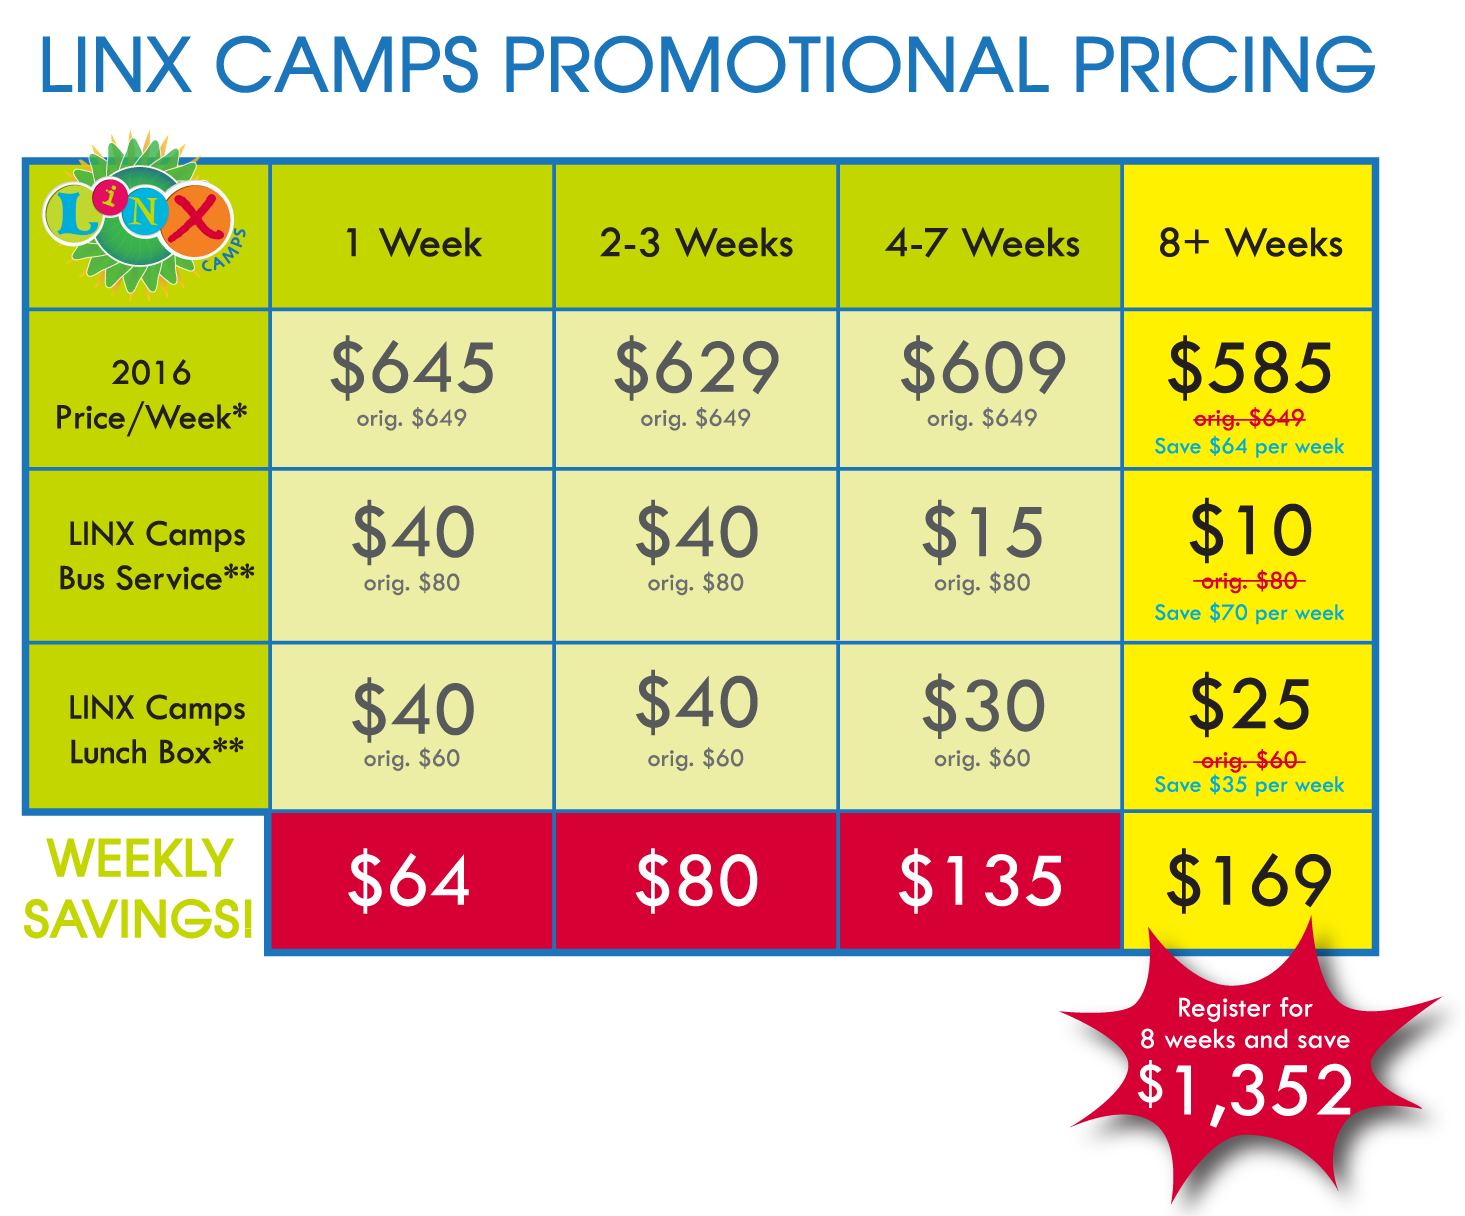 LINX Camps Promotional Pricing